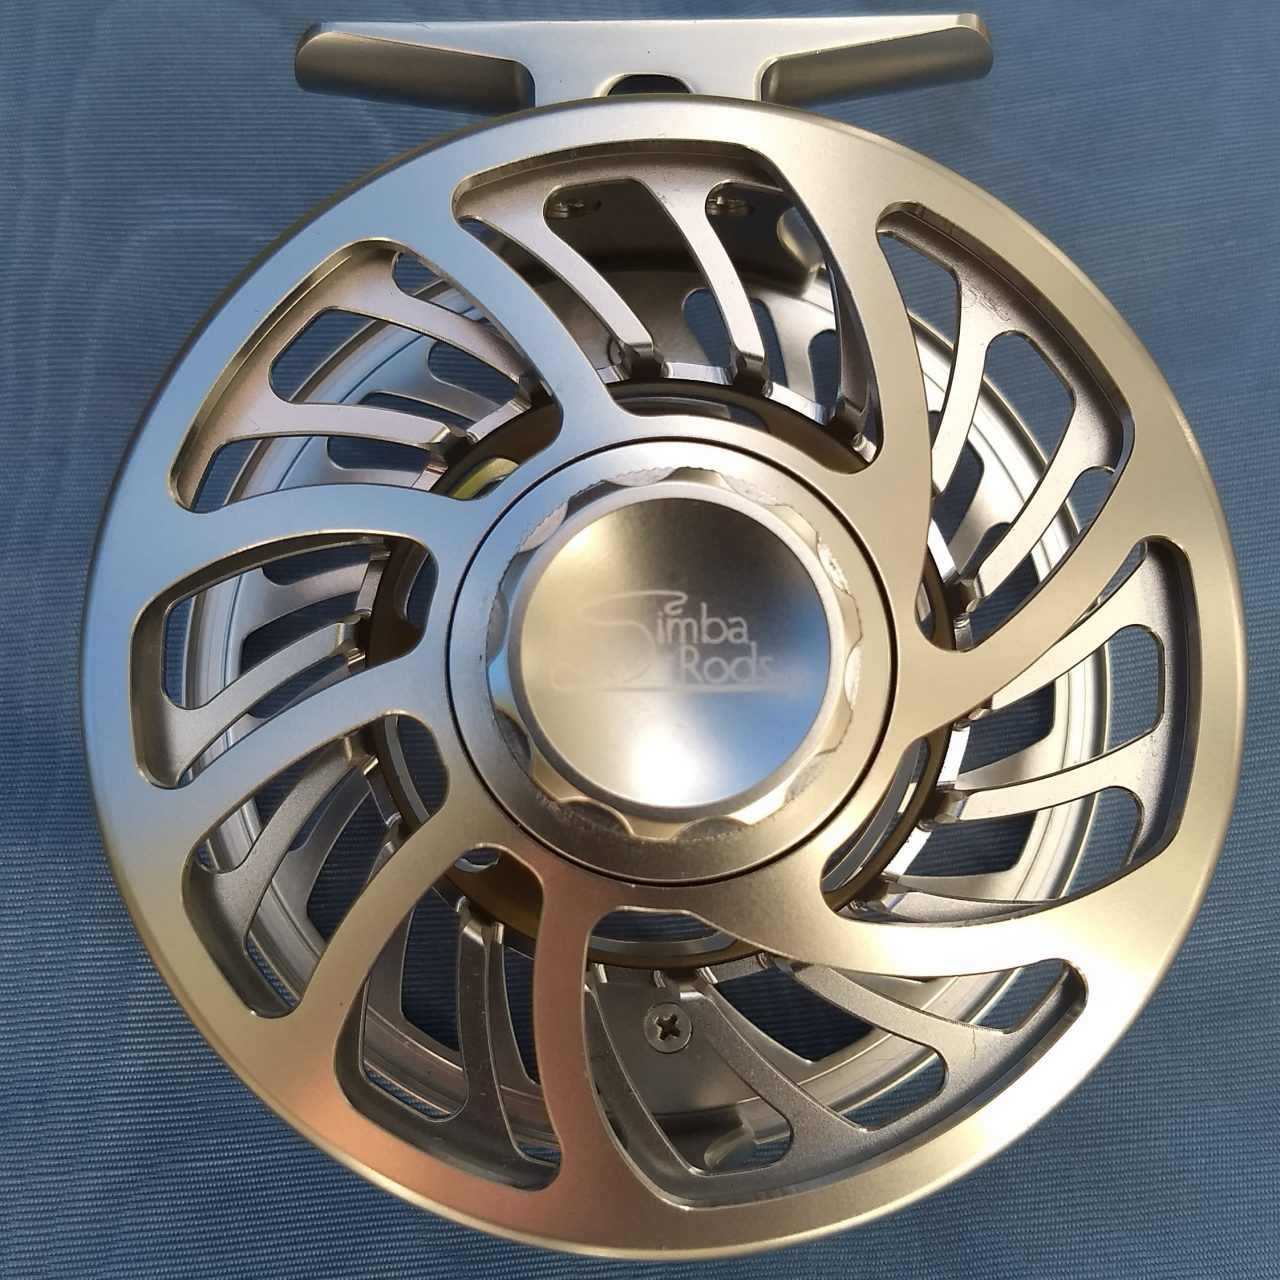 MTRG 5/7 Fly fishing reel